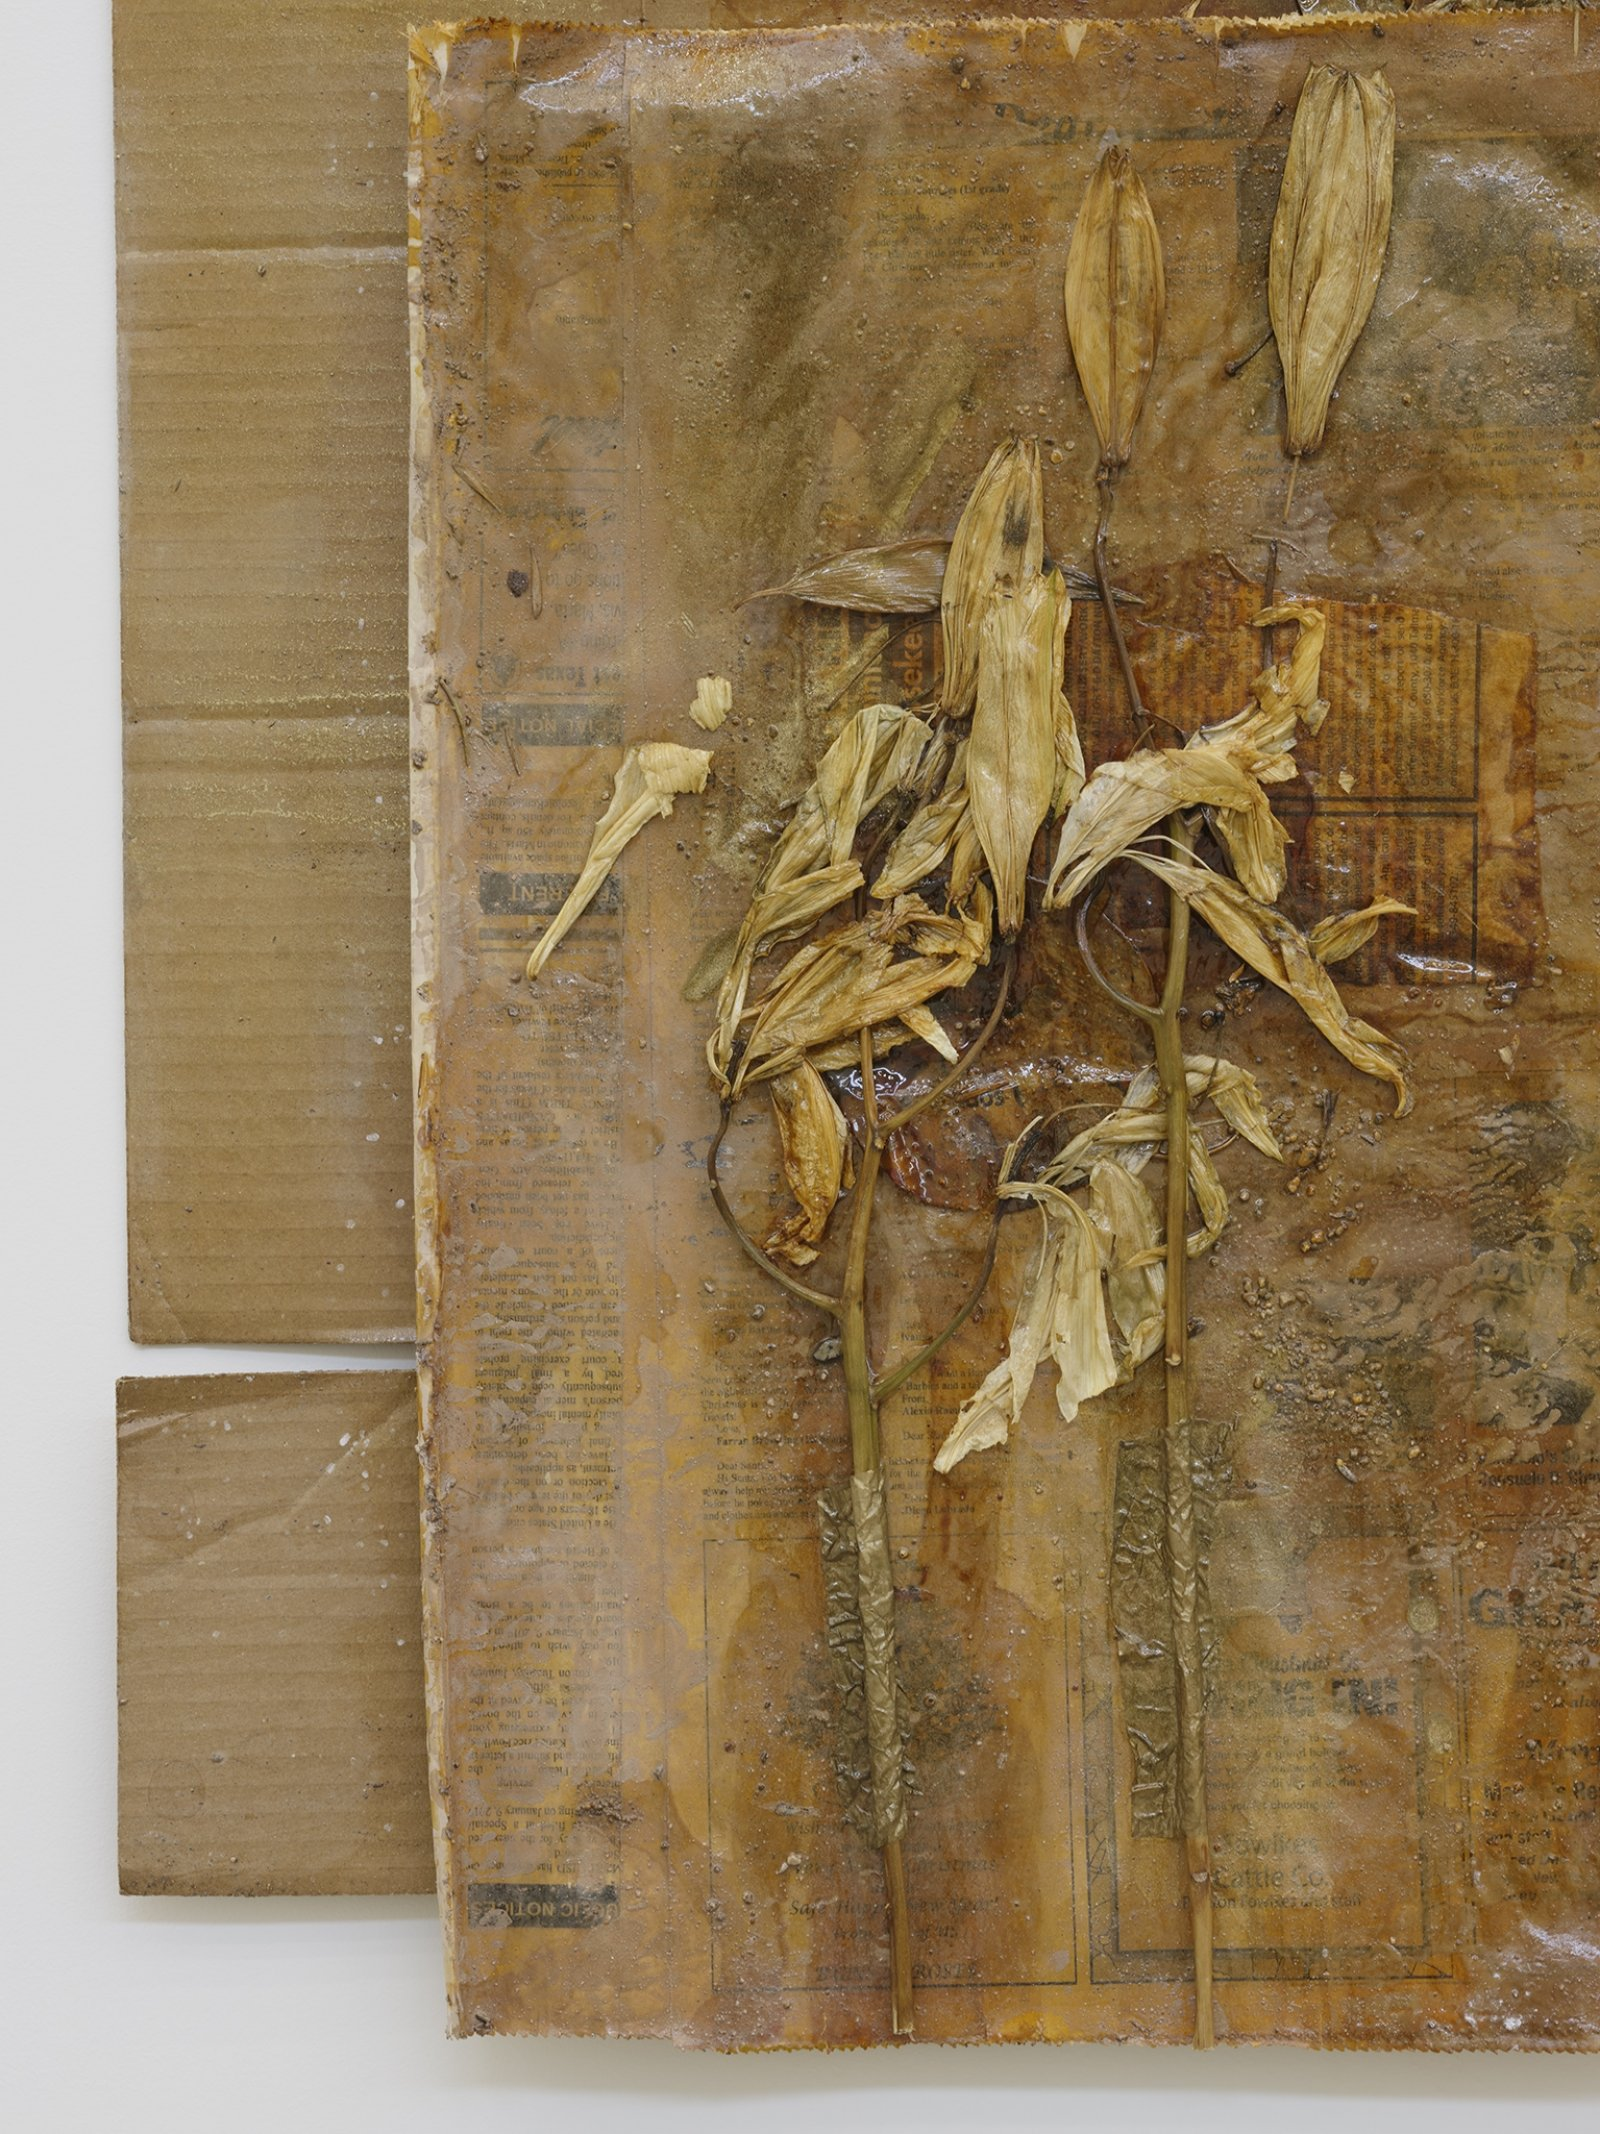 Rochelle Goldberg, Dirty Wall X (detail), 2019, cardboard, newsprint, tissue paper, lilies, shellac, gold pigment, dirt from the river, 28 x 28 in. (71 x 71 cm) by Rochelle Goldberg